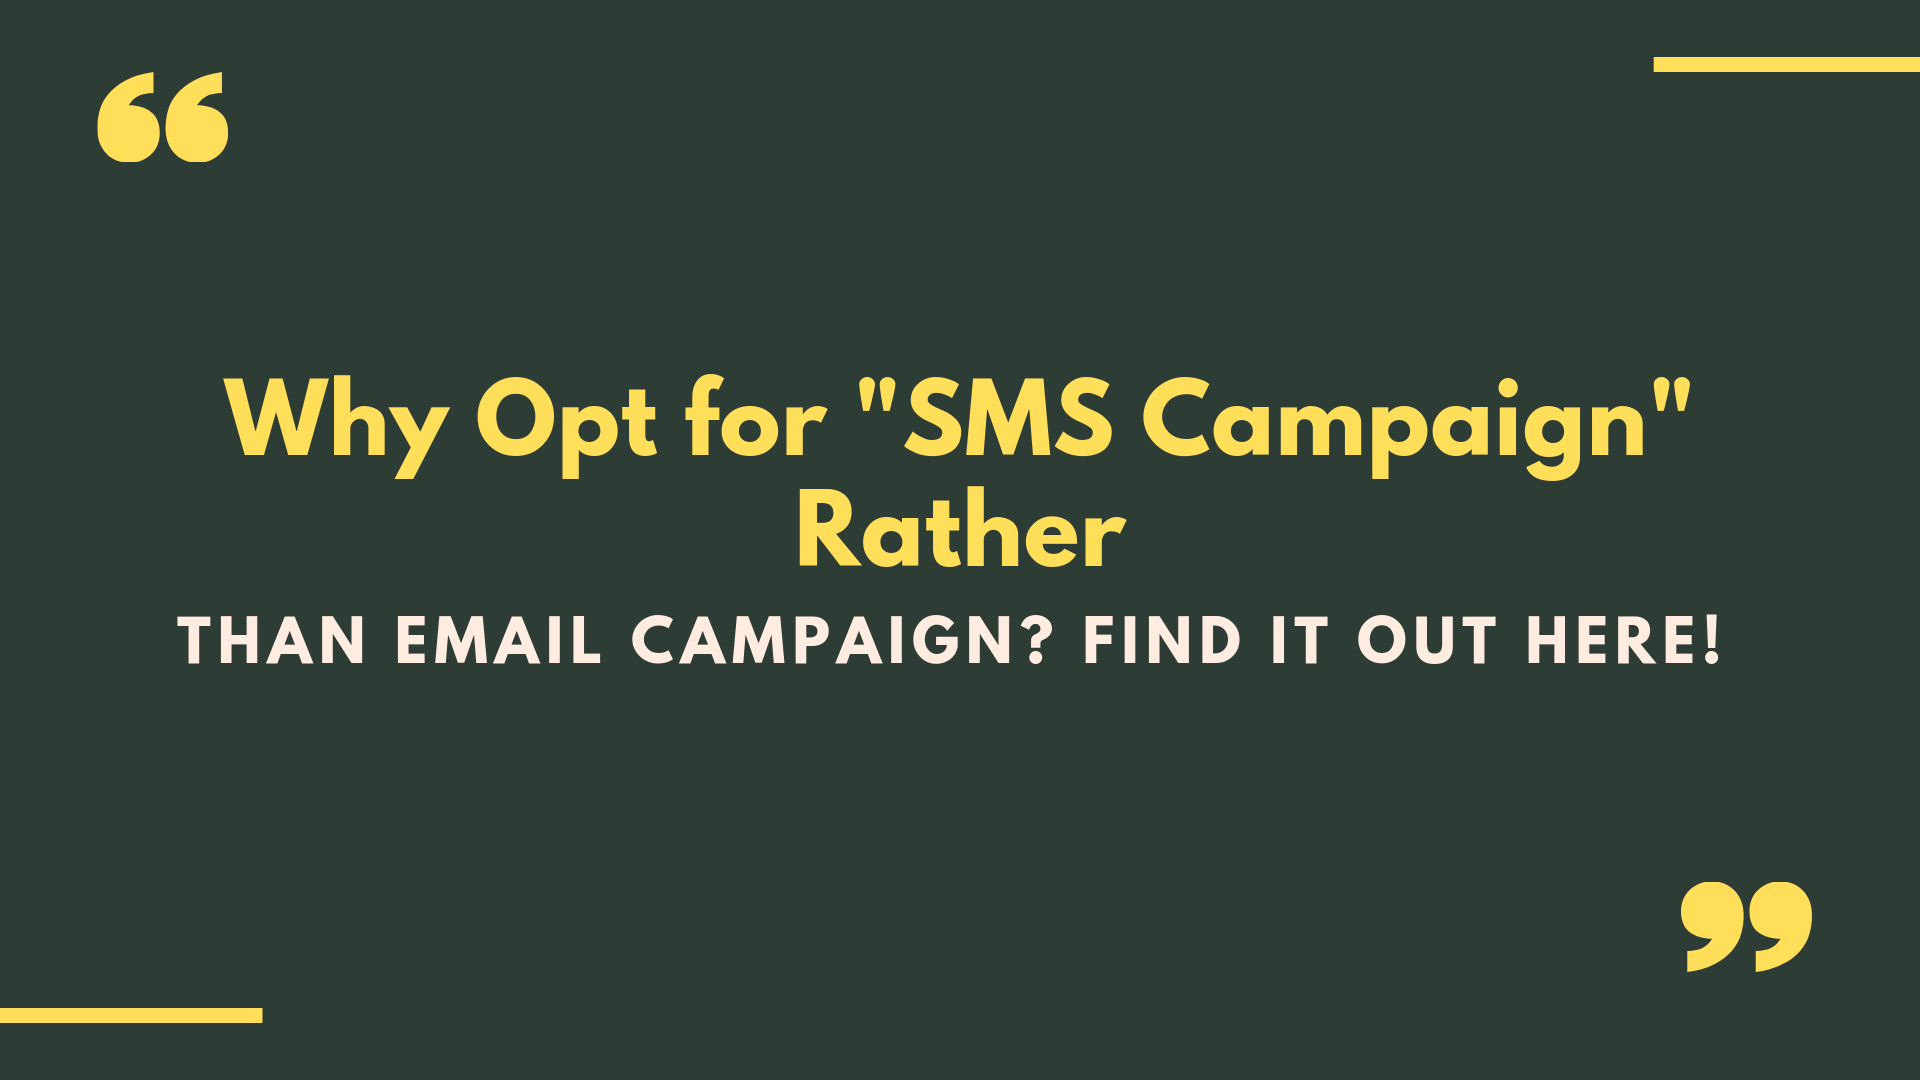 opt for SMS campaign